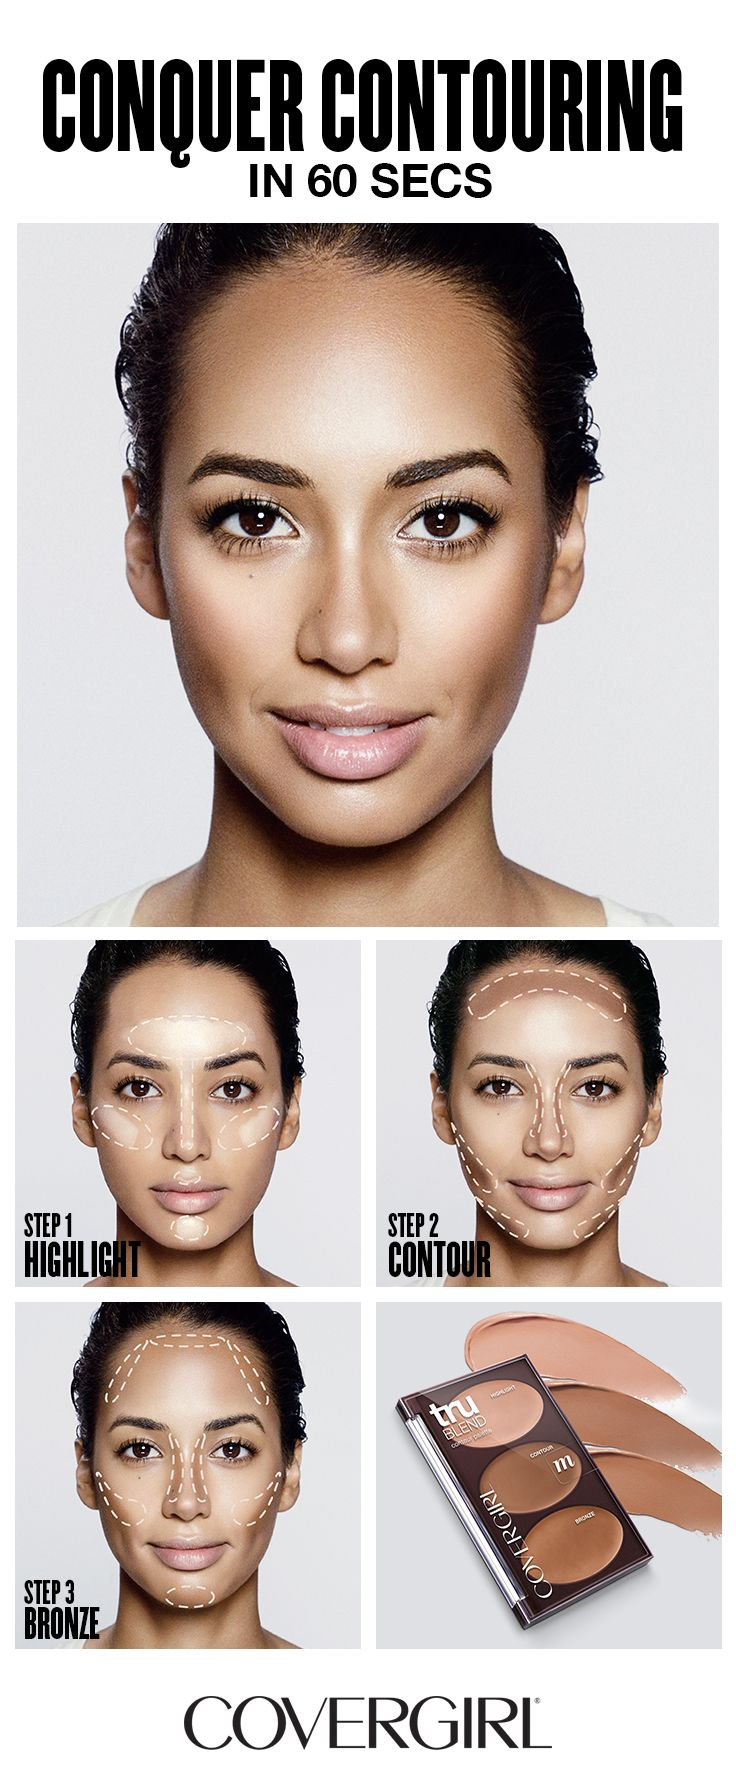 Shuishi on simple contouring highlighting contouring and ways to look younger in 10 minutes or less conquer contouring in 60 seconds amazing age defying home remedies to look younger simple diy anti aging baditri Gallery